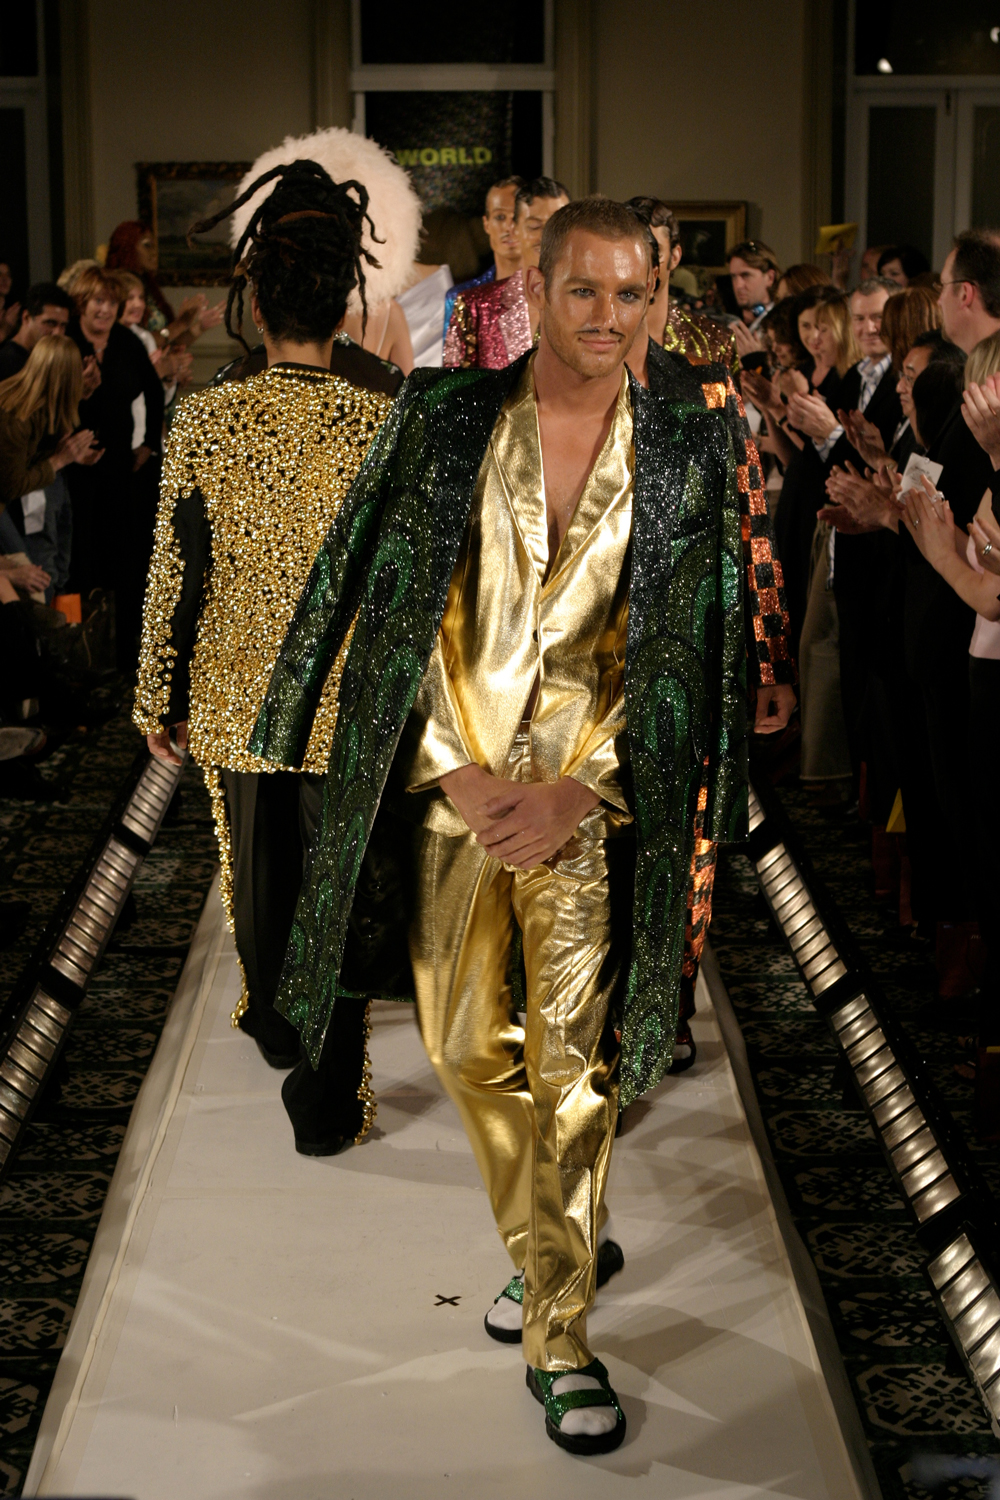 Hydrogen Bomb Explosion Zones, 2003, Glitter on Fabric, WORLD Winter Collection, NZ Fashion Week. Photo: Michael Ng.